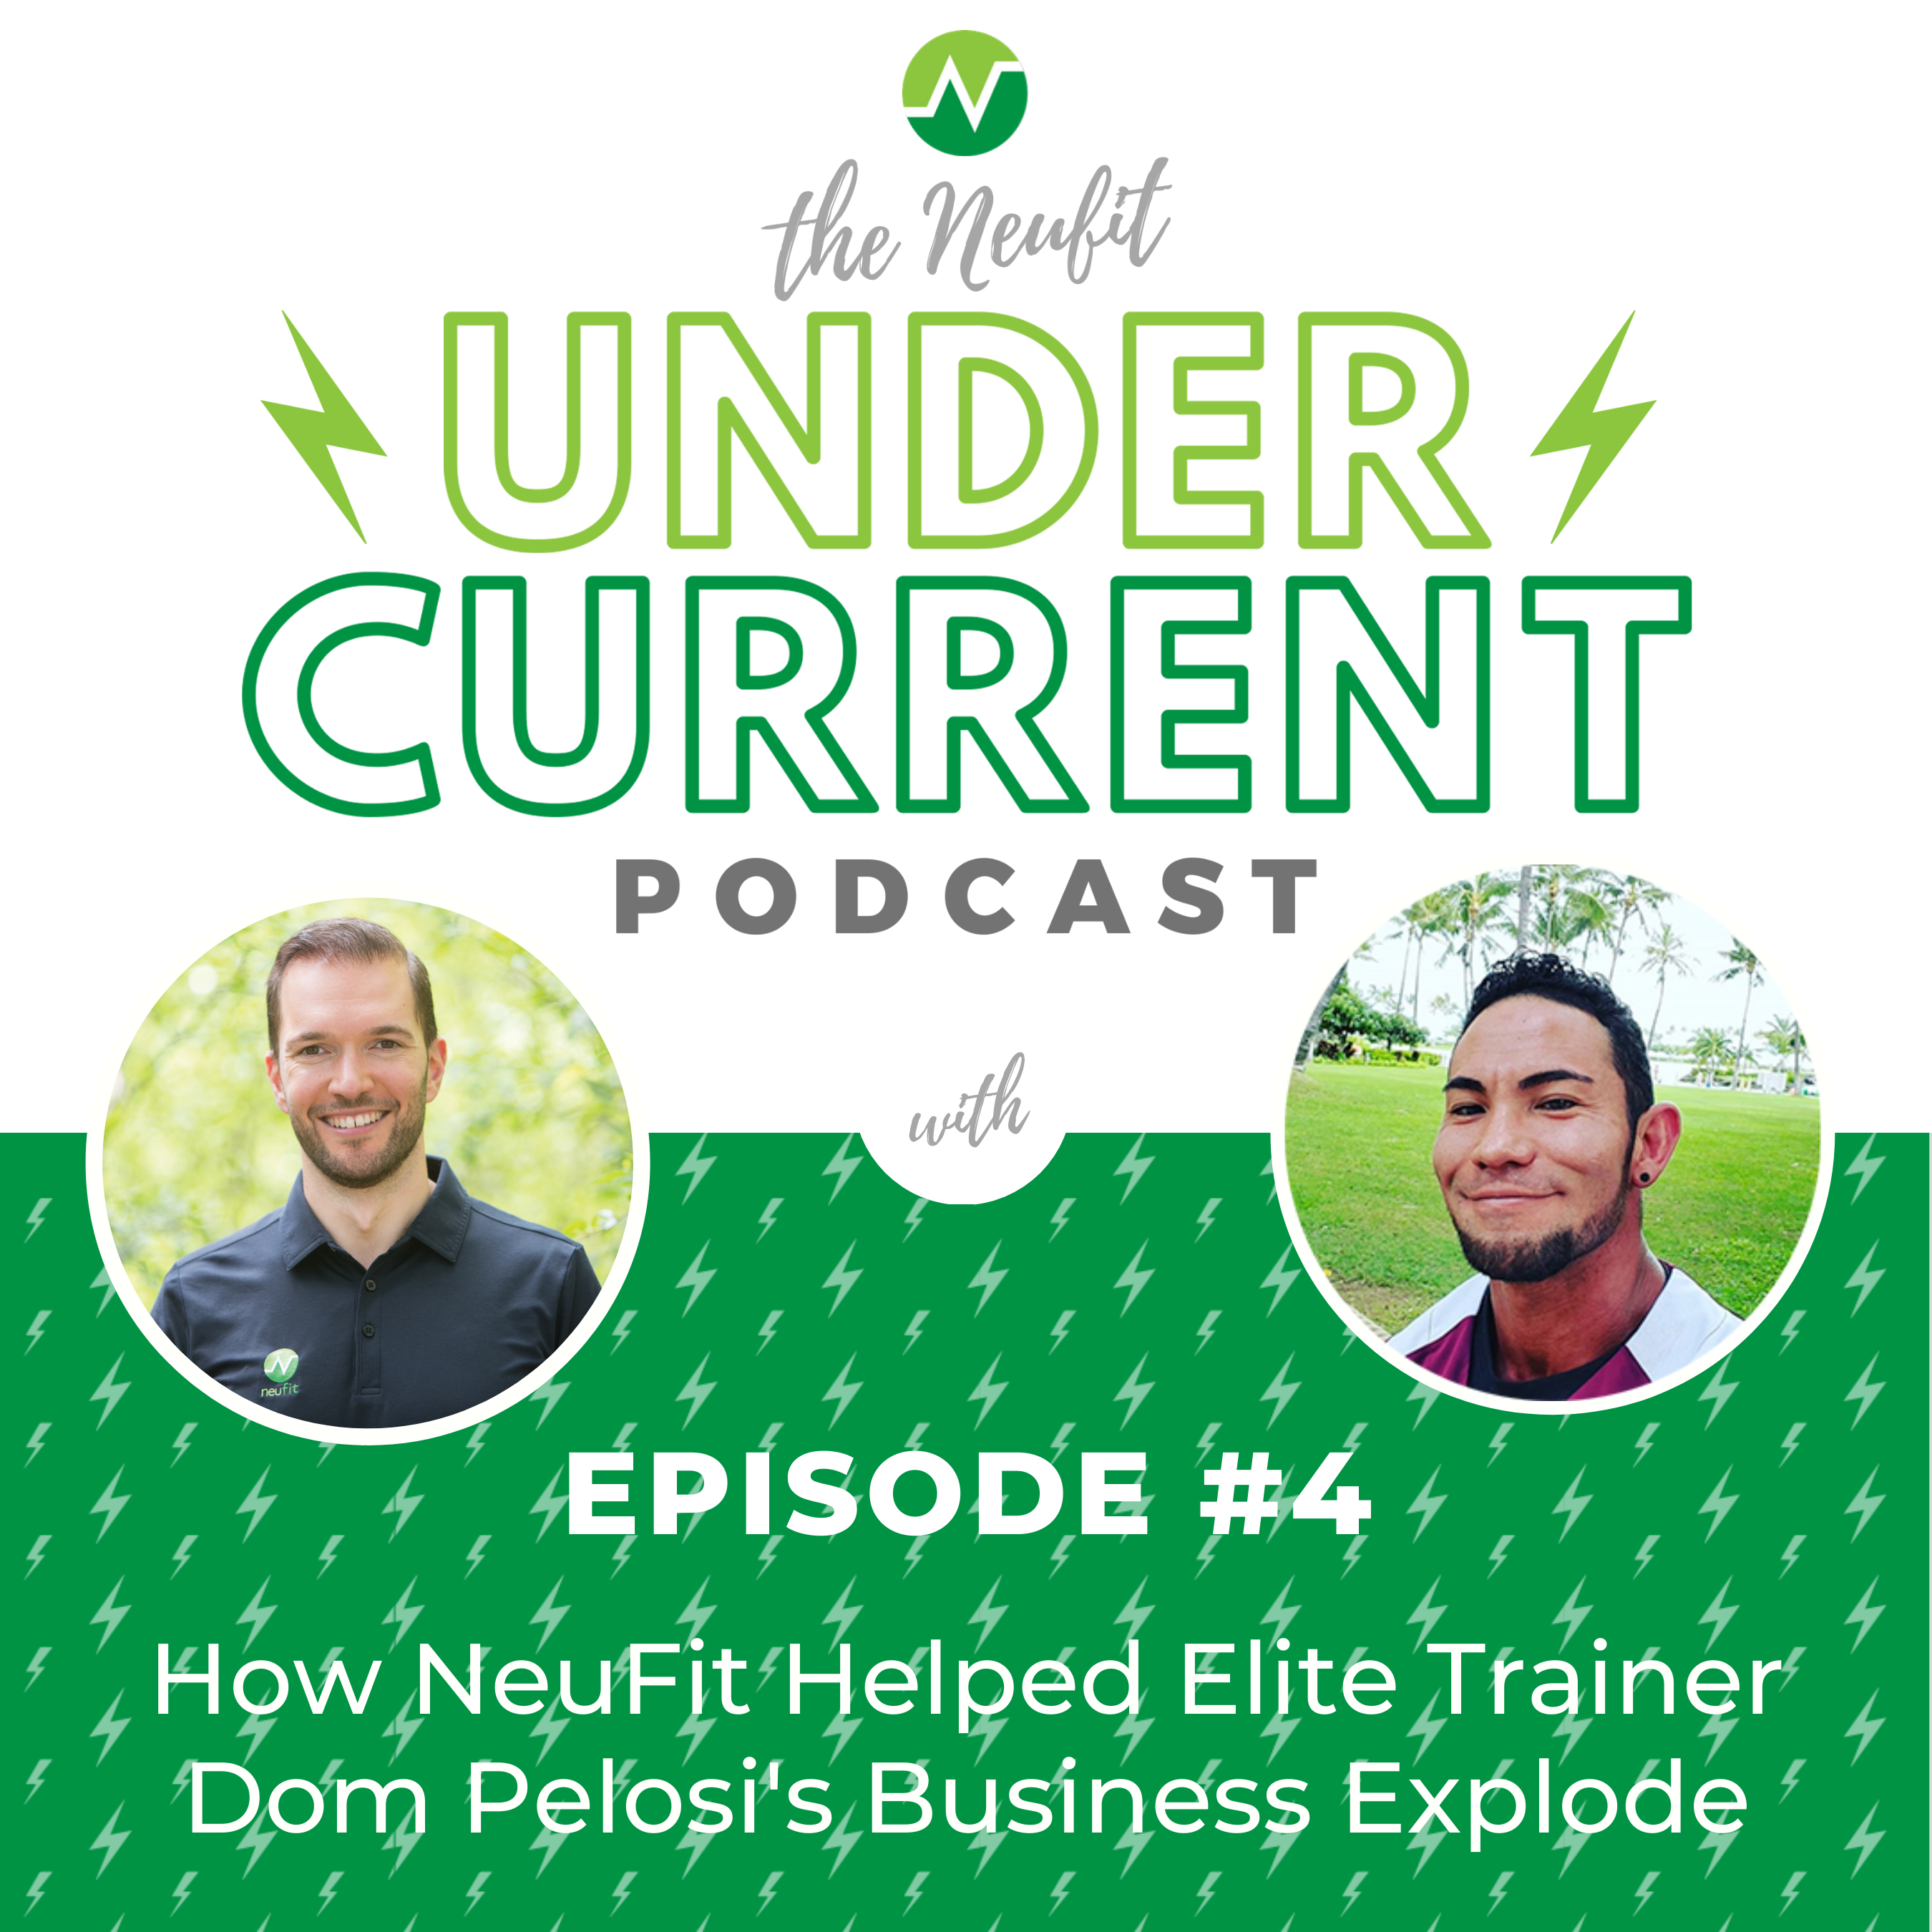 Episode 4: How NeuFit Helped an Elite Trainer's Business Explode